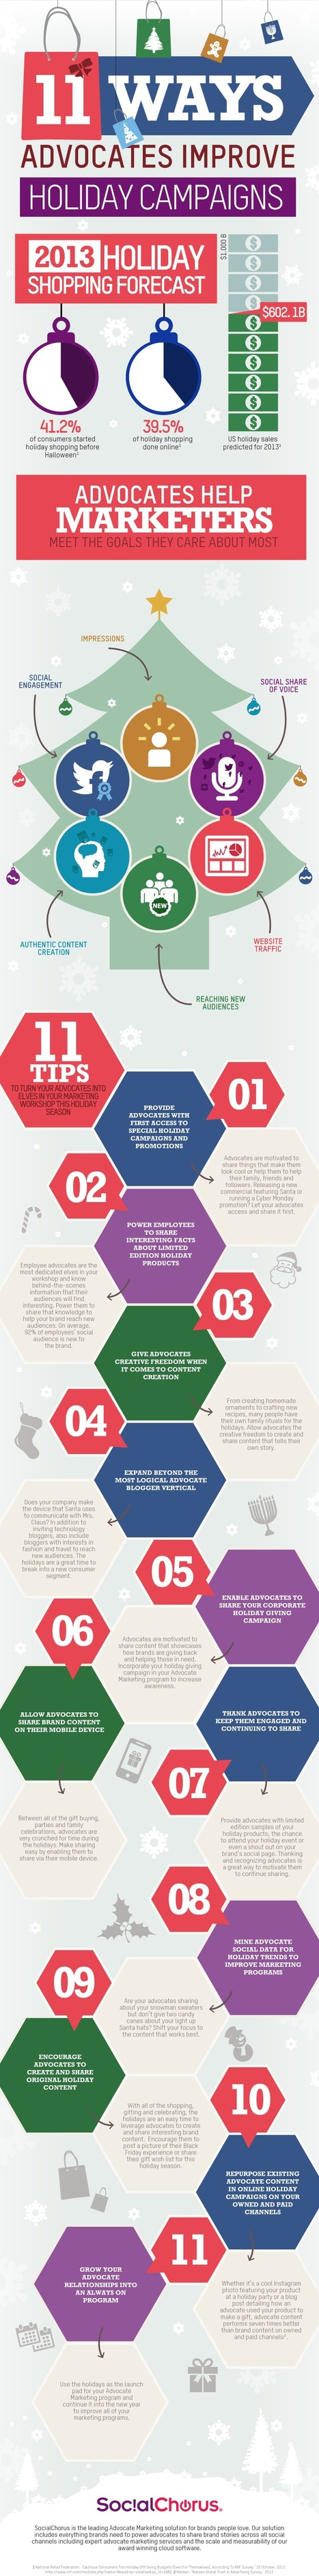 11 Tips for Turning Advocates Into Elves This Holiday Season [INFOGRAPHIC]   MarketingHits   Scoop.it